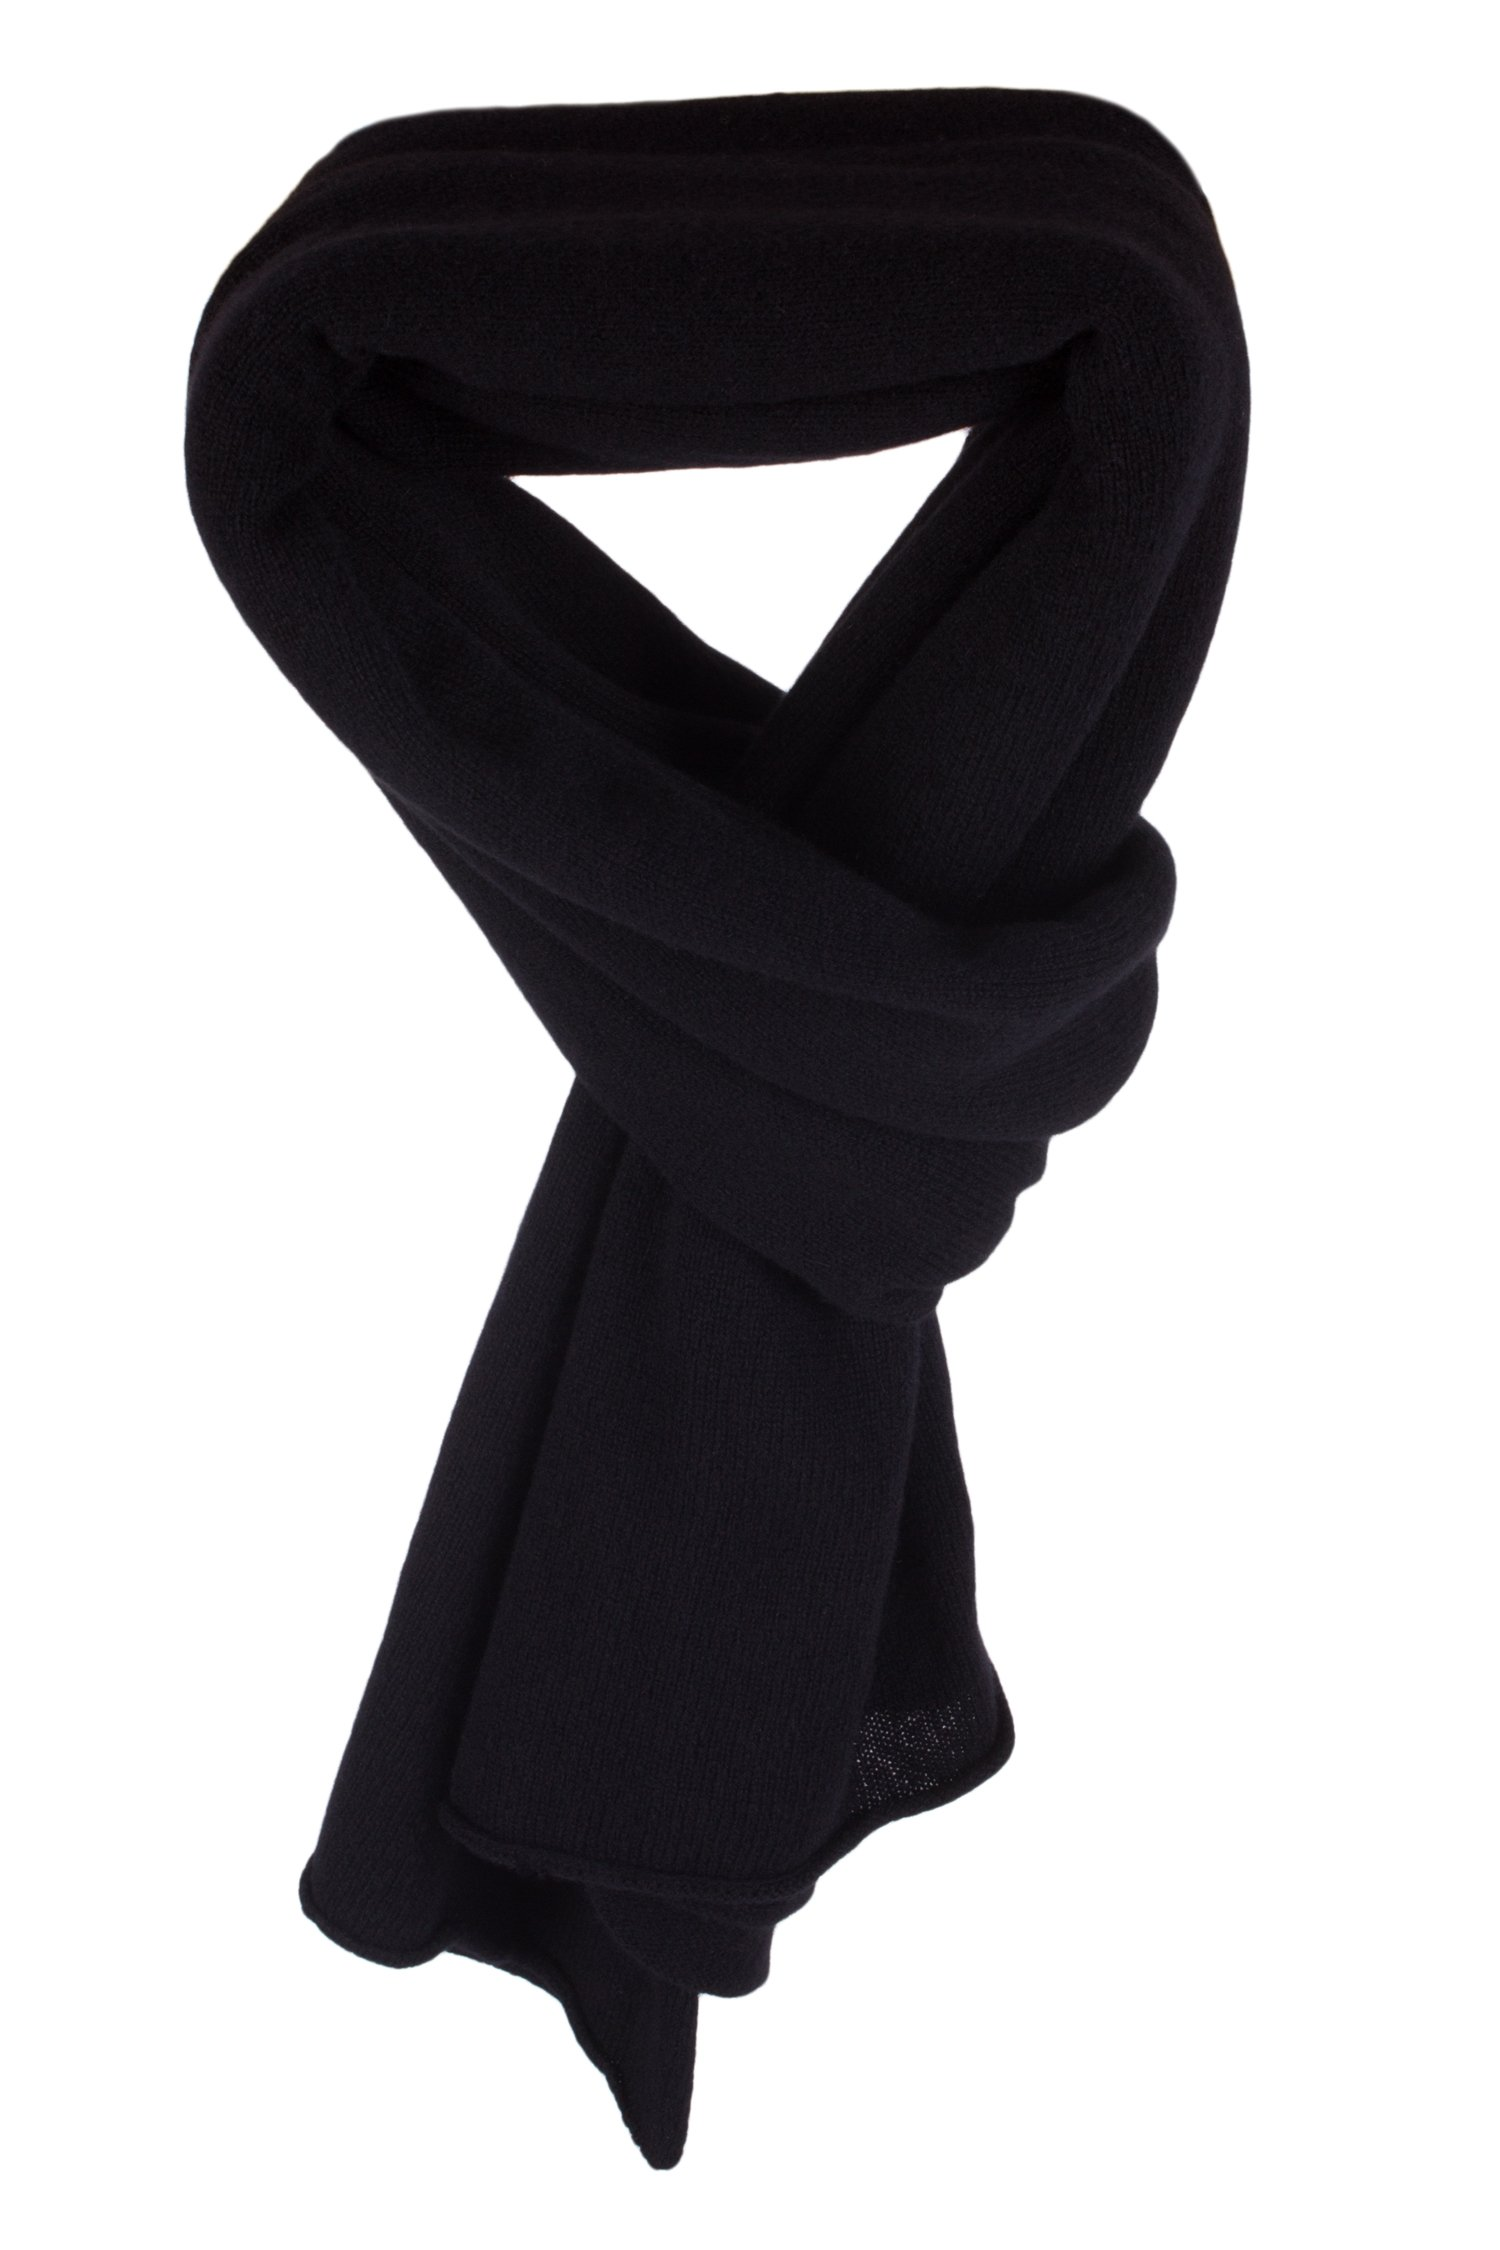 Ladies 100% Cashmere Wrap Scarf - Black - hand made in Scotland by Love Cashmere